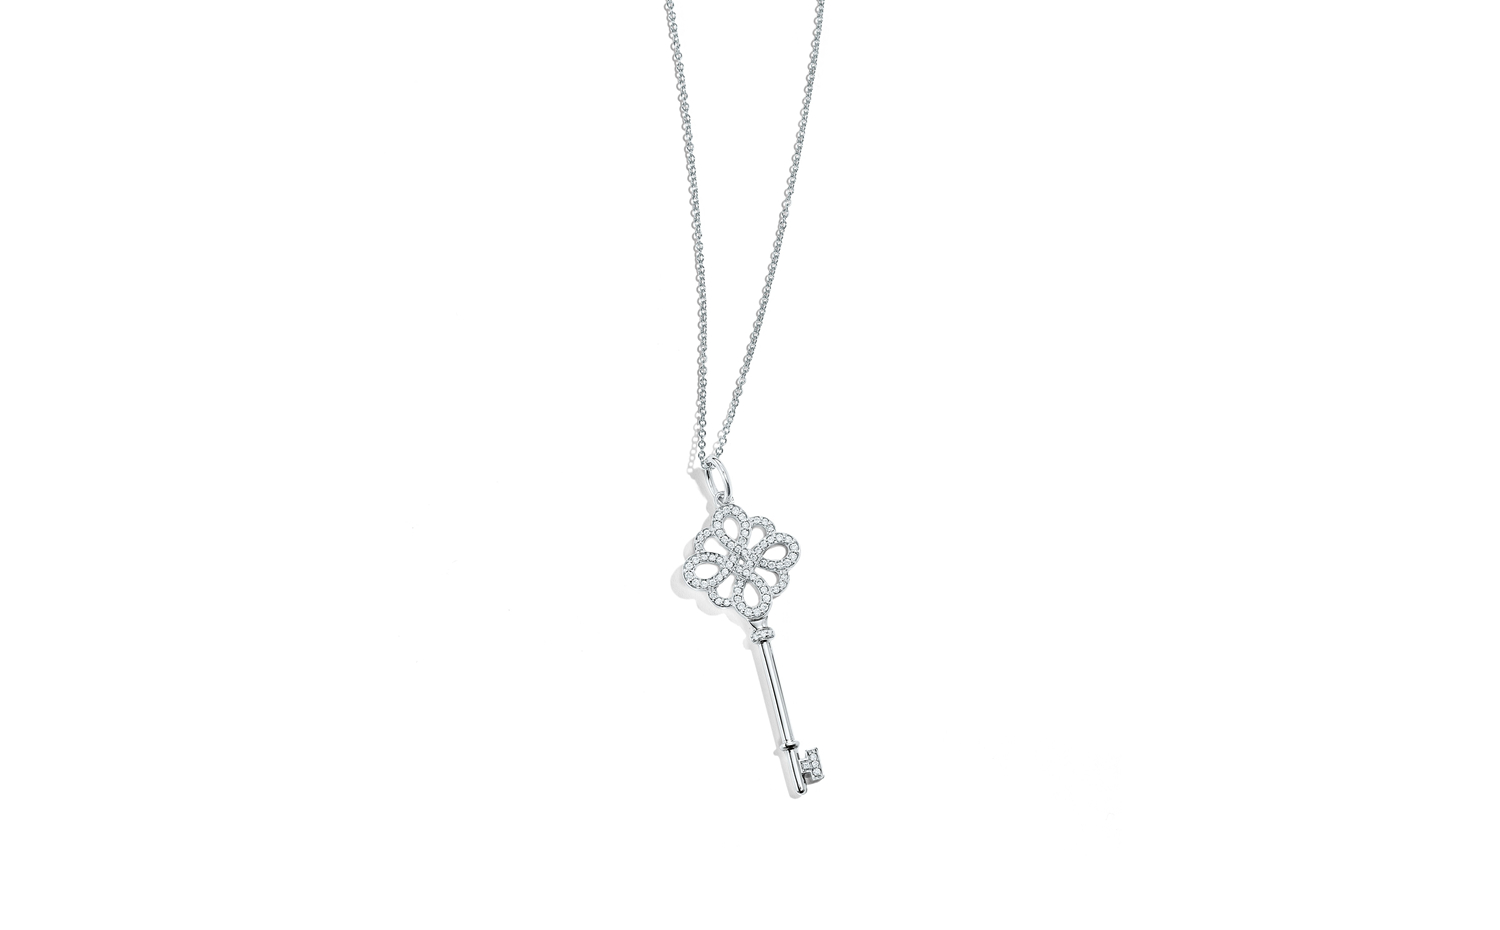 Tiffany Keys Knot Key Pendant in White Gold with Diamonds